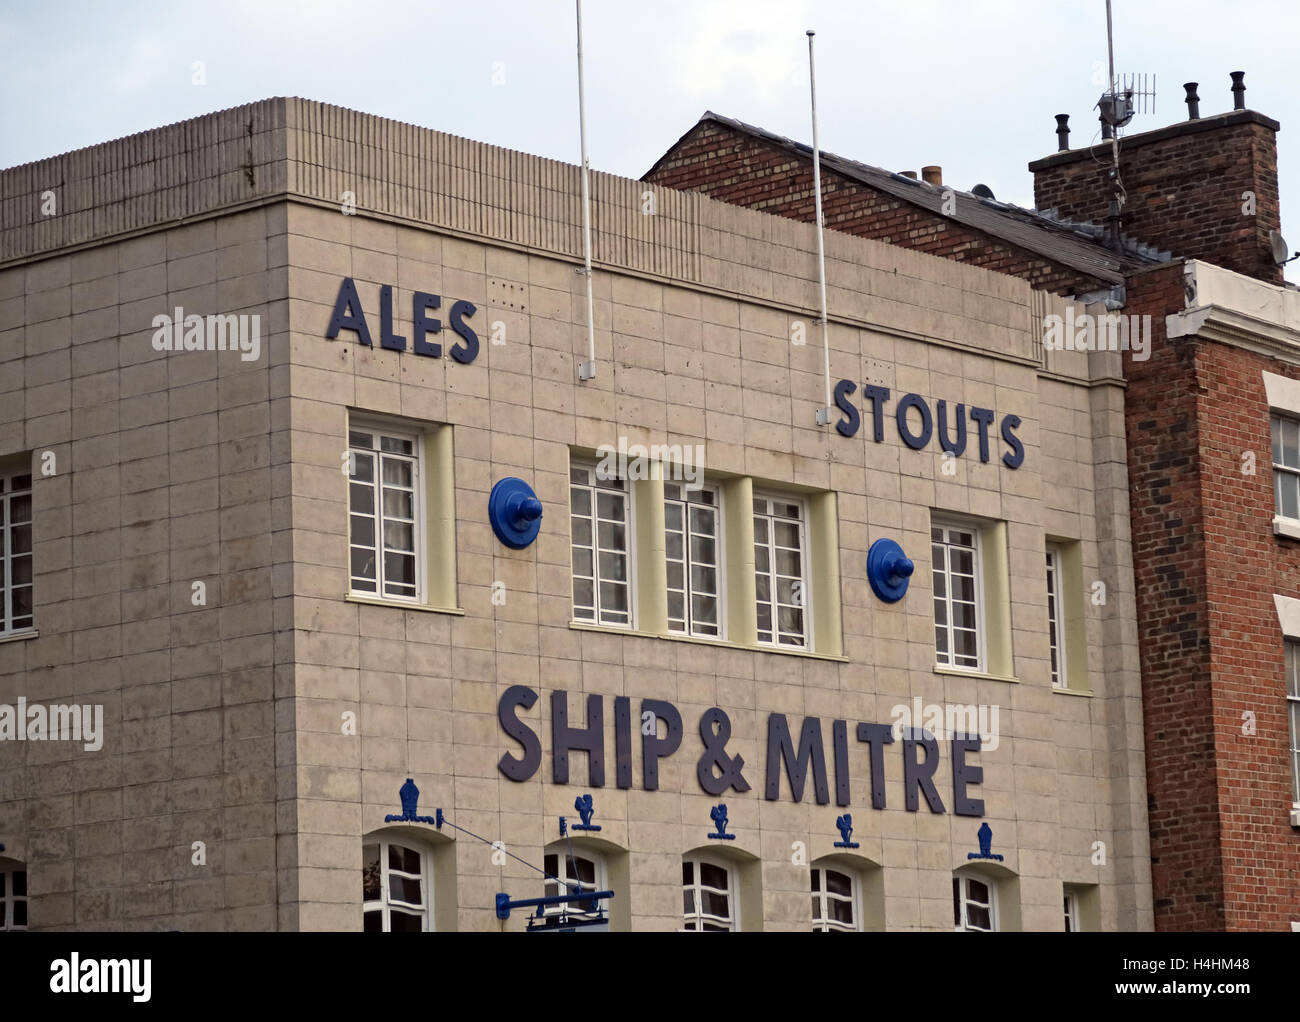 CAMRA,ale,beer,drinks,drinking,art,deco,Art-Deco,brewhouse,brew,house,craft,craftale,flagship,CAMRA,Dale,St,Street,M2,landmark,tourist,tourism,boozer,building,architecture,Liverpool Pubs,Ship & Mitre,Ship and Mitre,GoTonySmith,@HotpixUK,Tony,Smith,UK,GB,Great,Britain,United,Kingdom,English,British,England,Buy Pictures of,Buy Images Of,Images of,Stock Images,Tony Smith,United Kingdom,Great Britain,British Isles